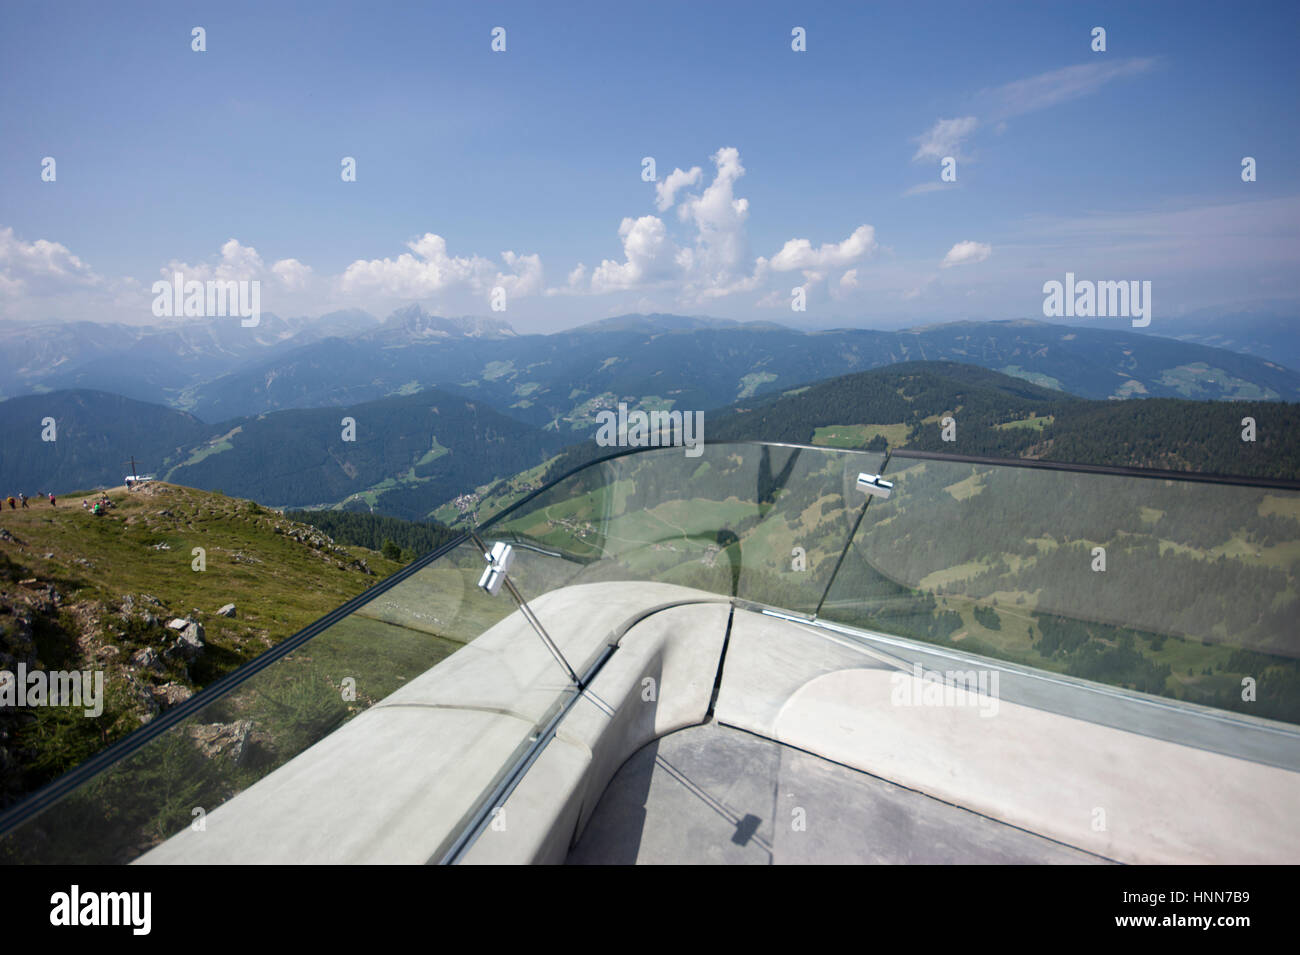 Zaha Hadid Architects Messner Corones Mountain Museum Italy, view from the balcony / outdoor terrace overlooking - Stock Image